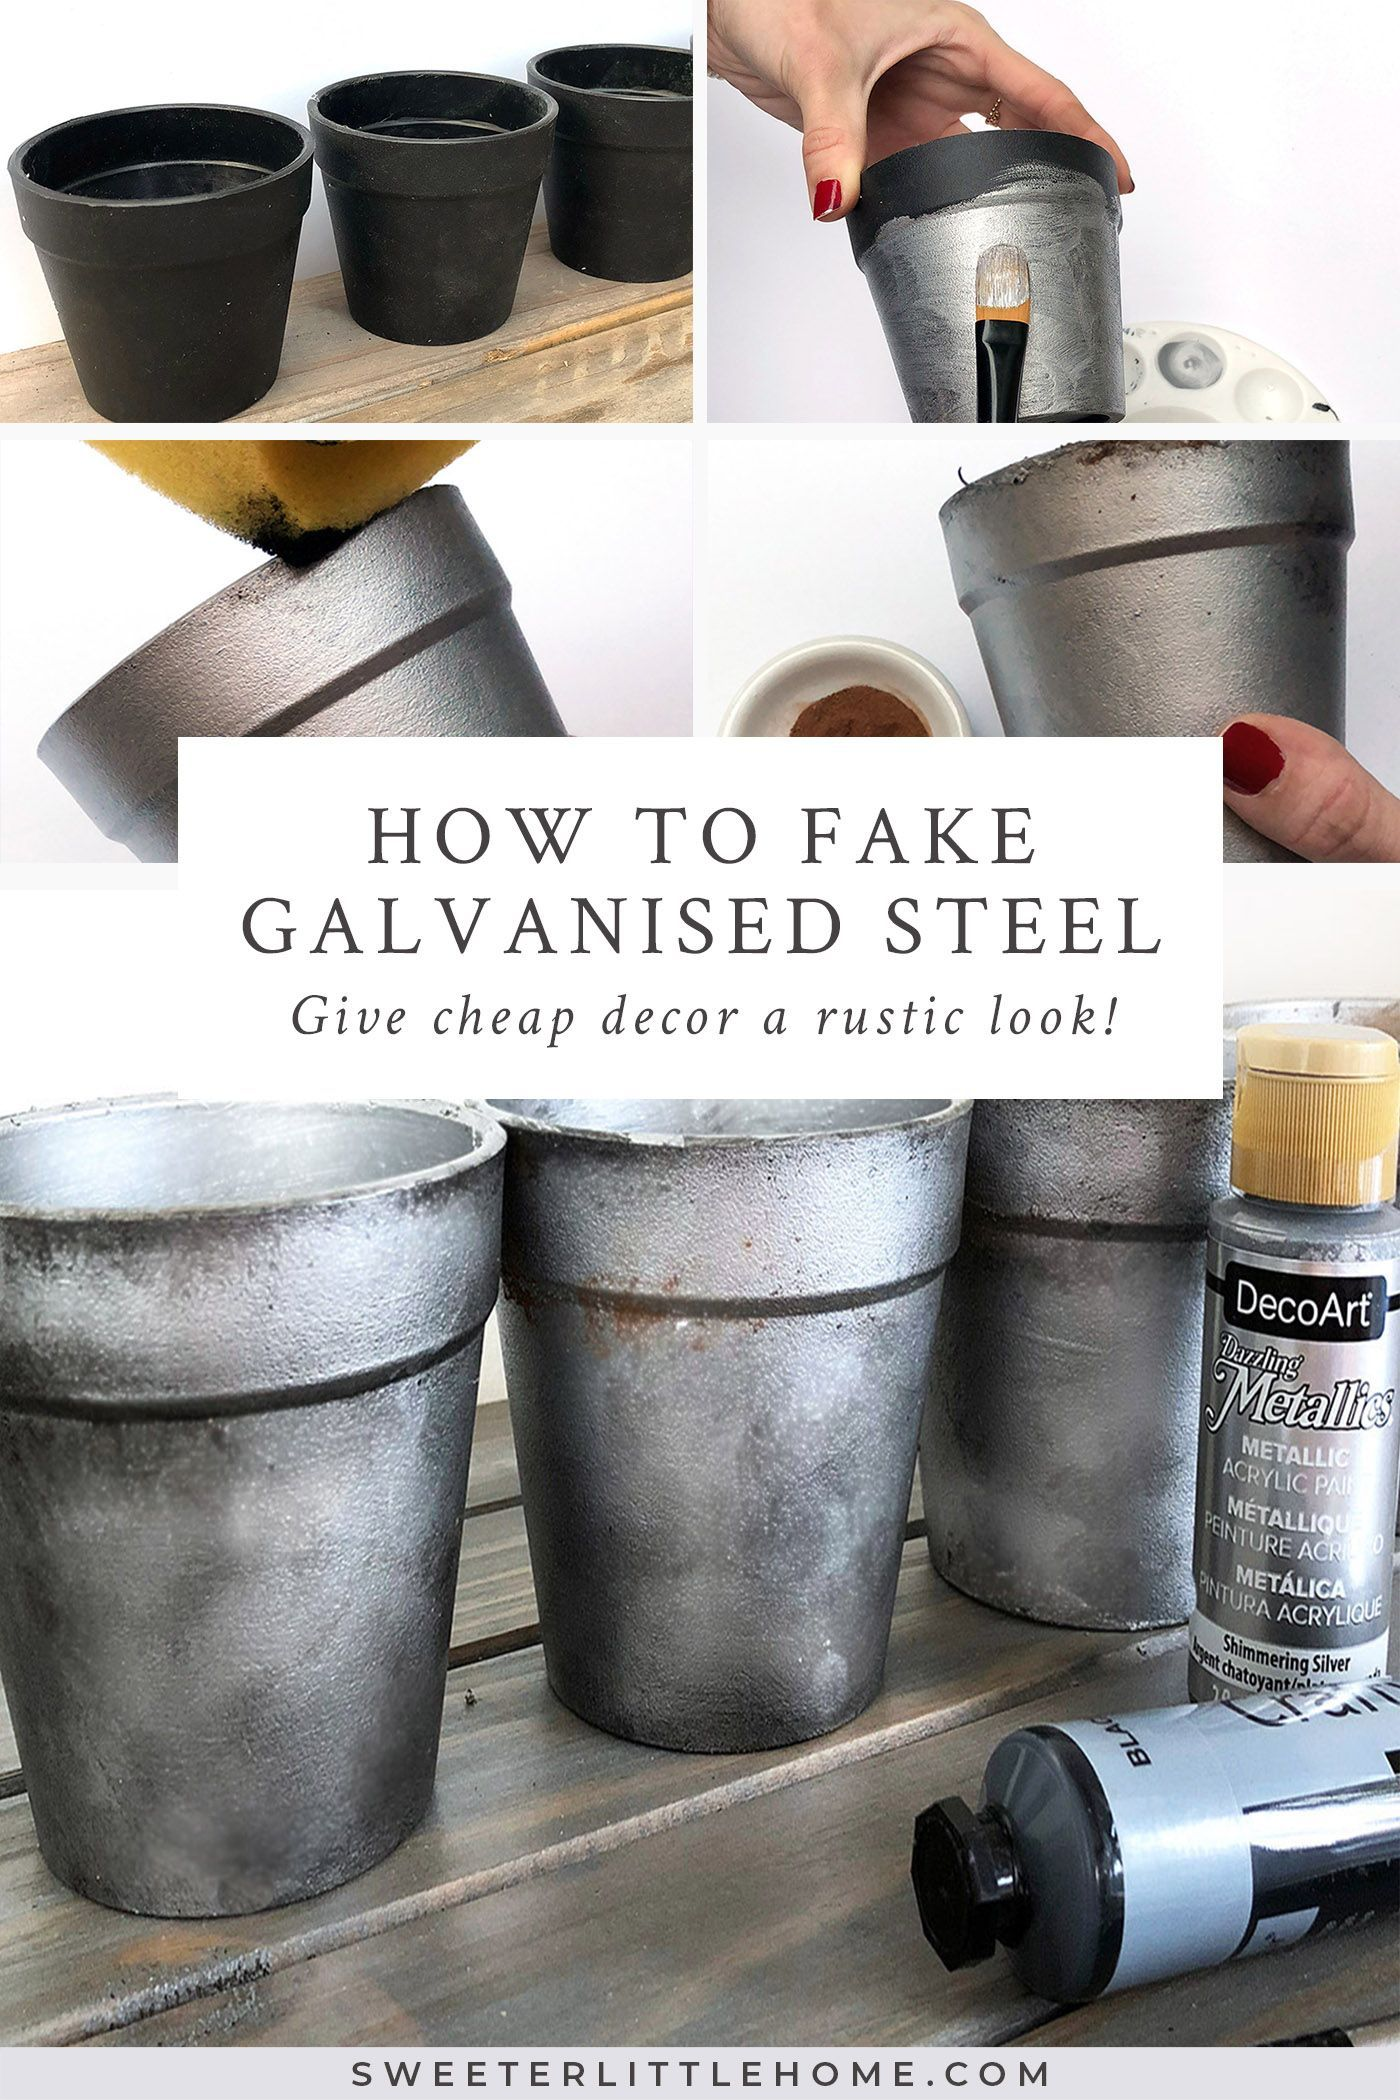 How To Fake Galvanised Steel The Easy Way Trendy Home Decor